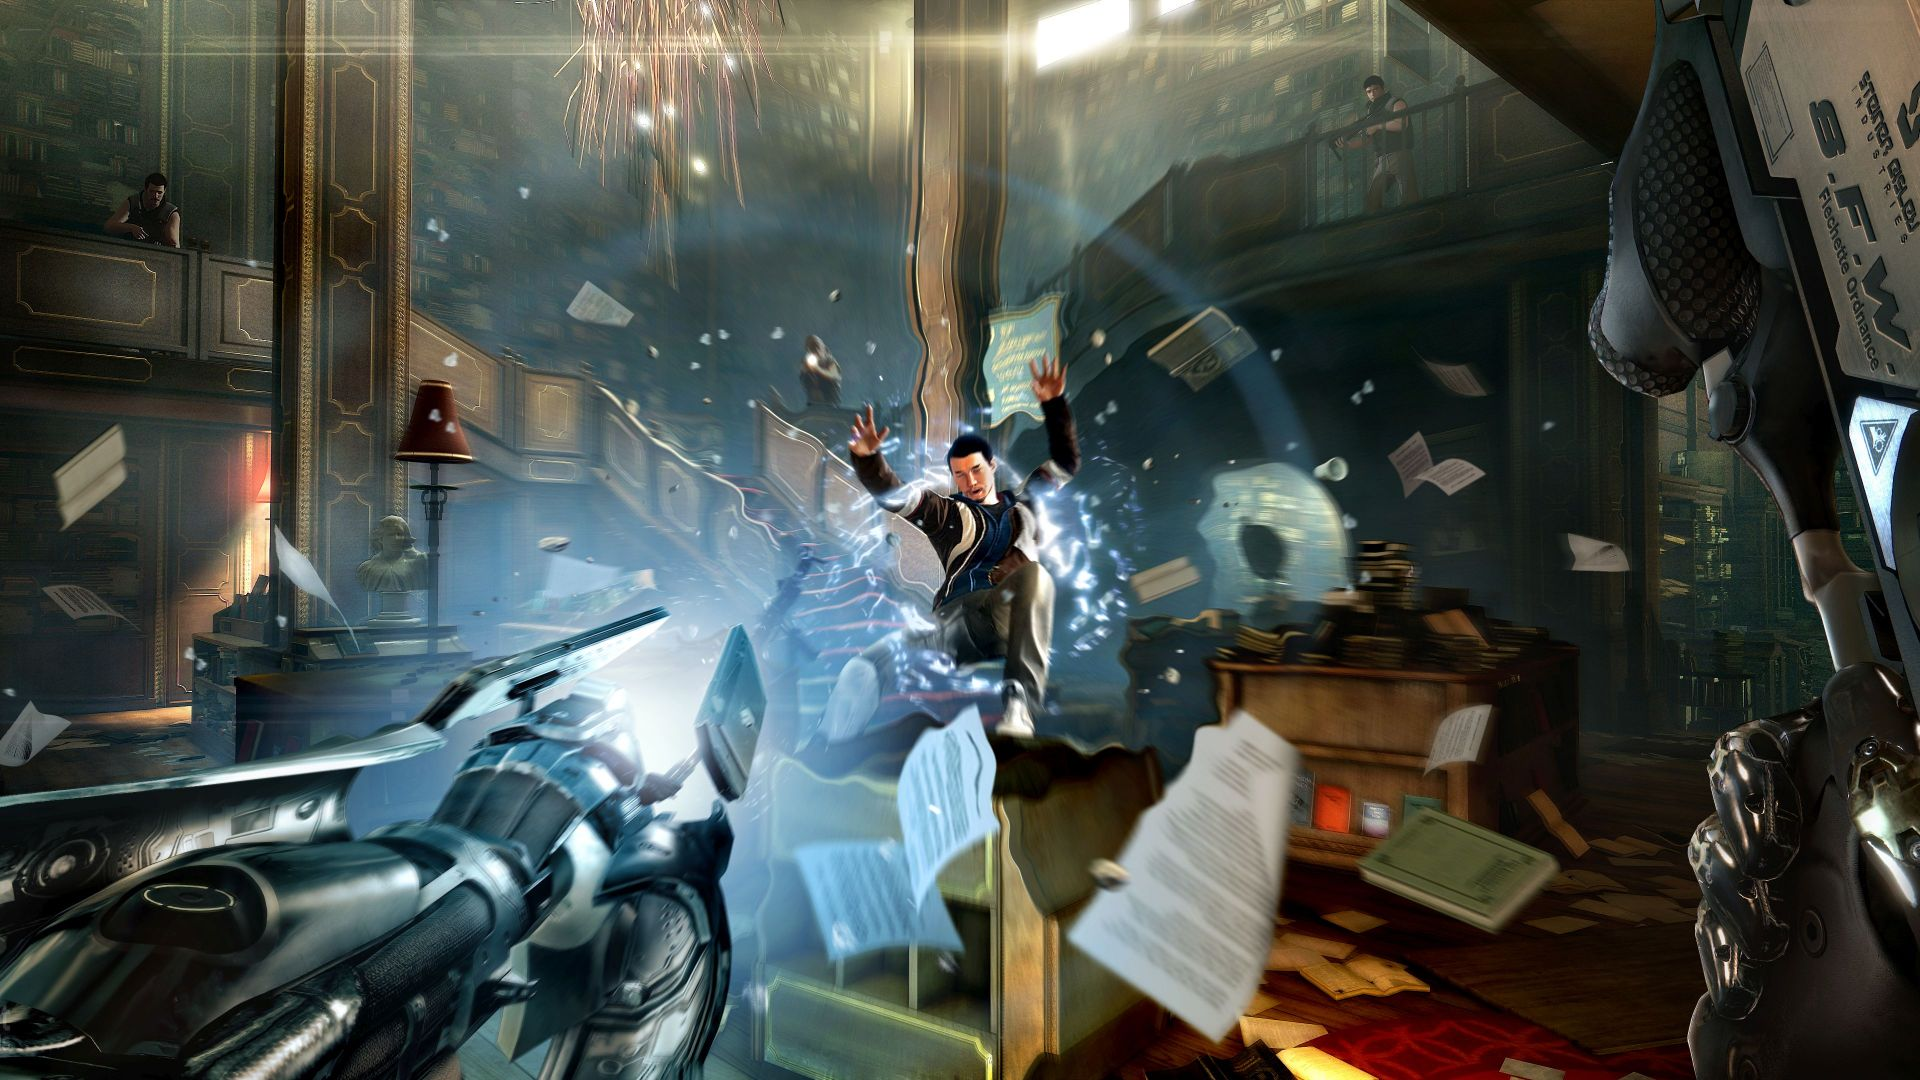 Deus Ex: Mankind Divided, Деус Экс, PC, PlayStation 3, PlayStation 4, Xbox 360, Xbox One, Deus Ex: Mankind Divided, Best Games 2016, game, cyberpunk, sci-fi, PC, Xbox one, PS4 (horizontal)